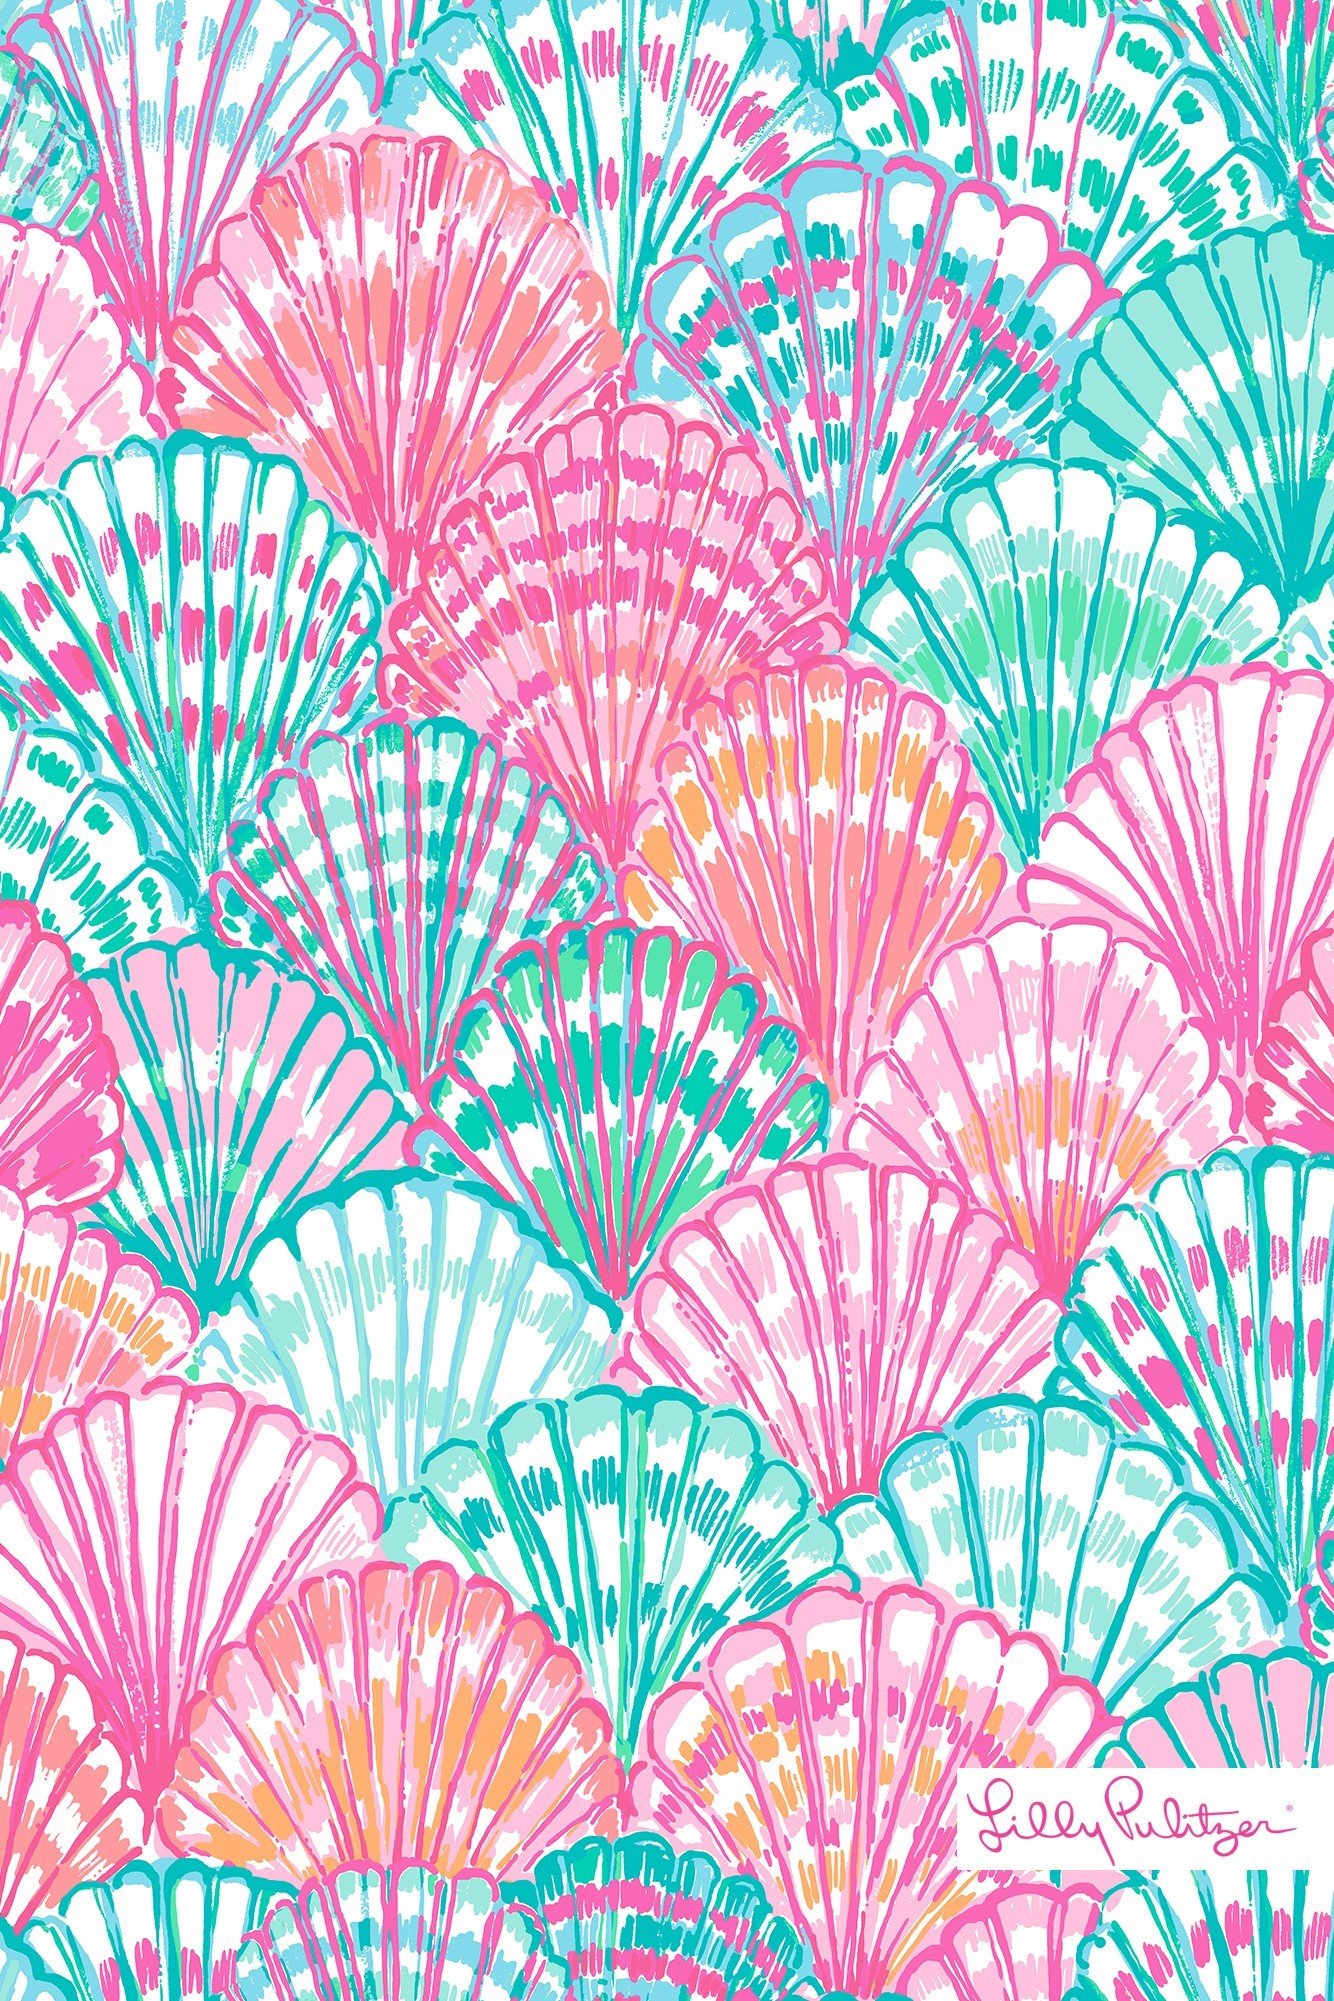 Res: 1334x2001, Holographic Wallpaper New Lilly Pulitzer Oh Shello Mobile Wallpaper  Wallpapers